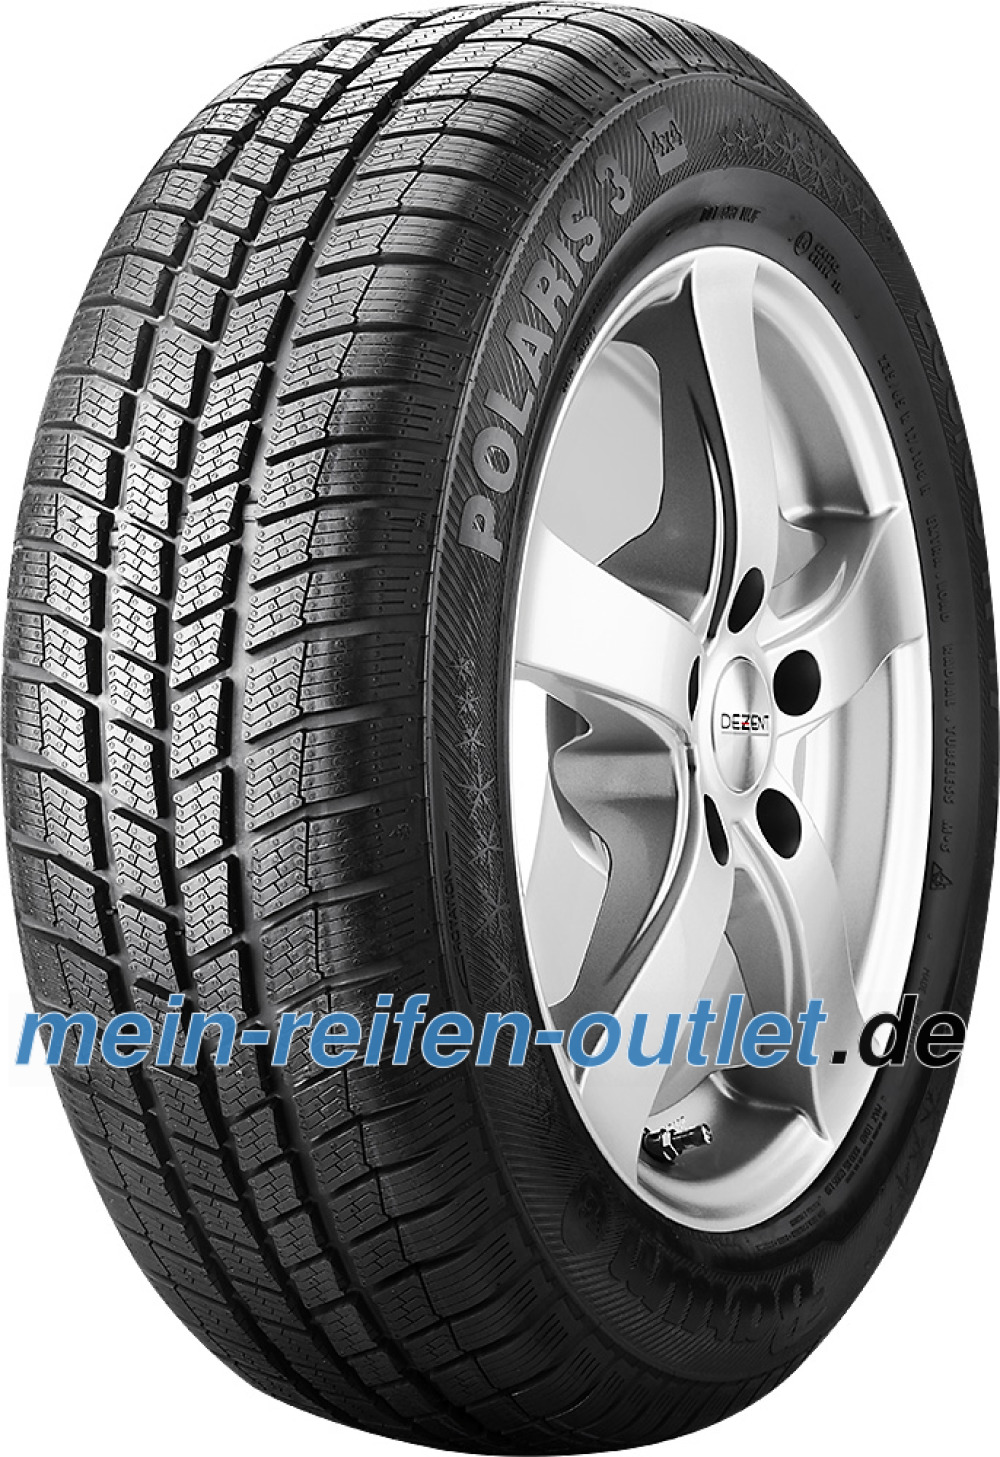 Barum Polaris 3 4x4 ( 265/70 R16 112T )